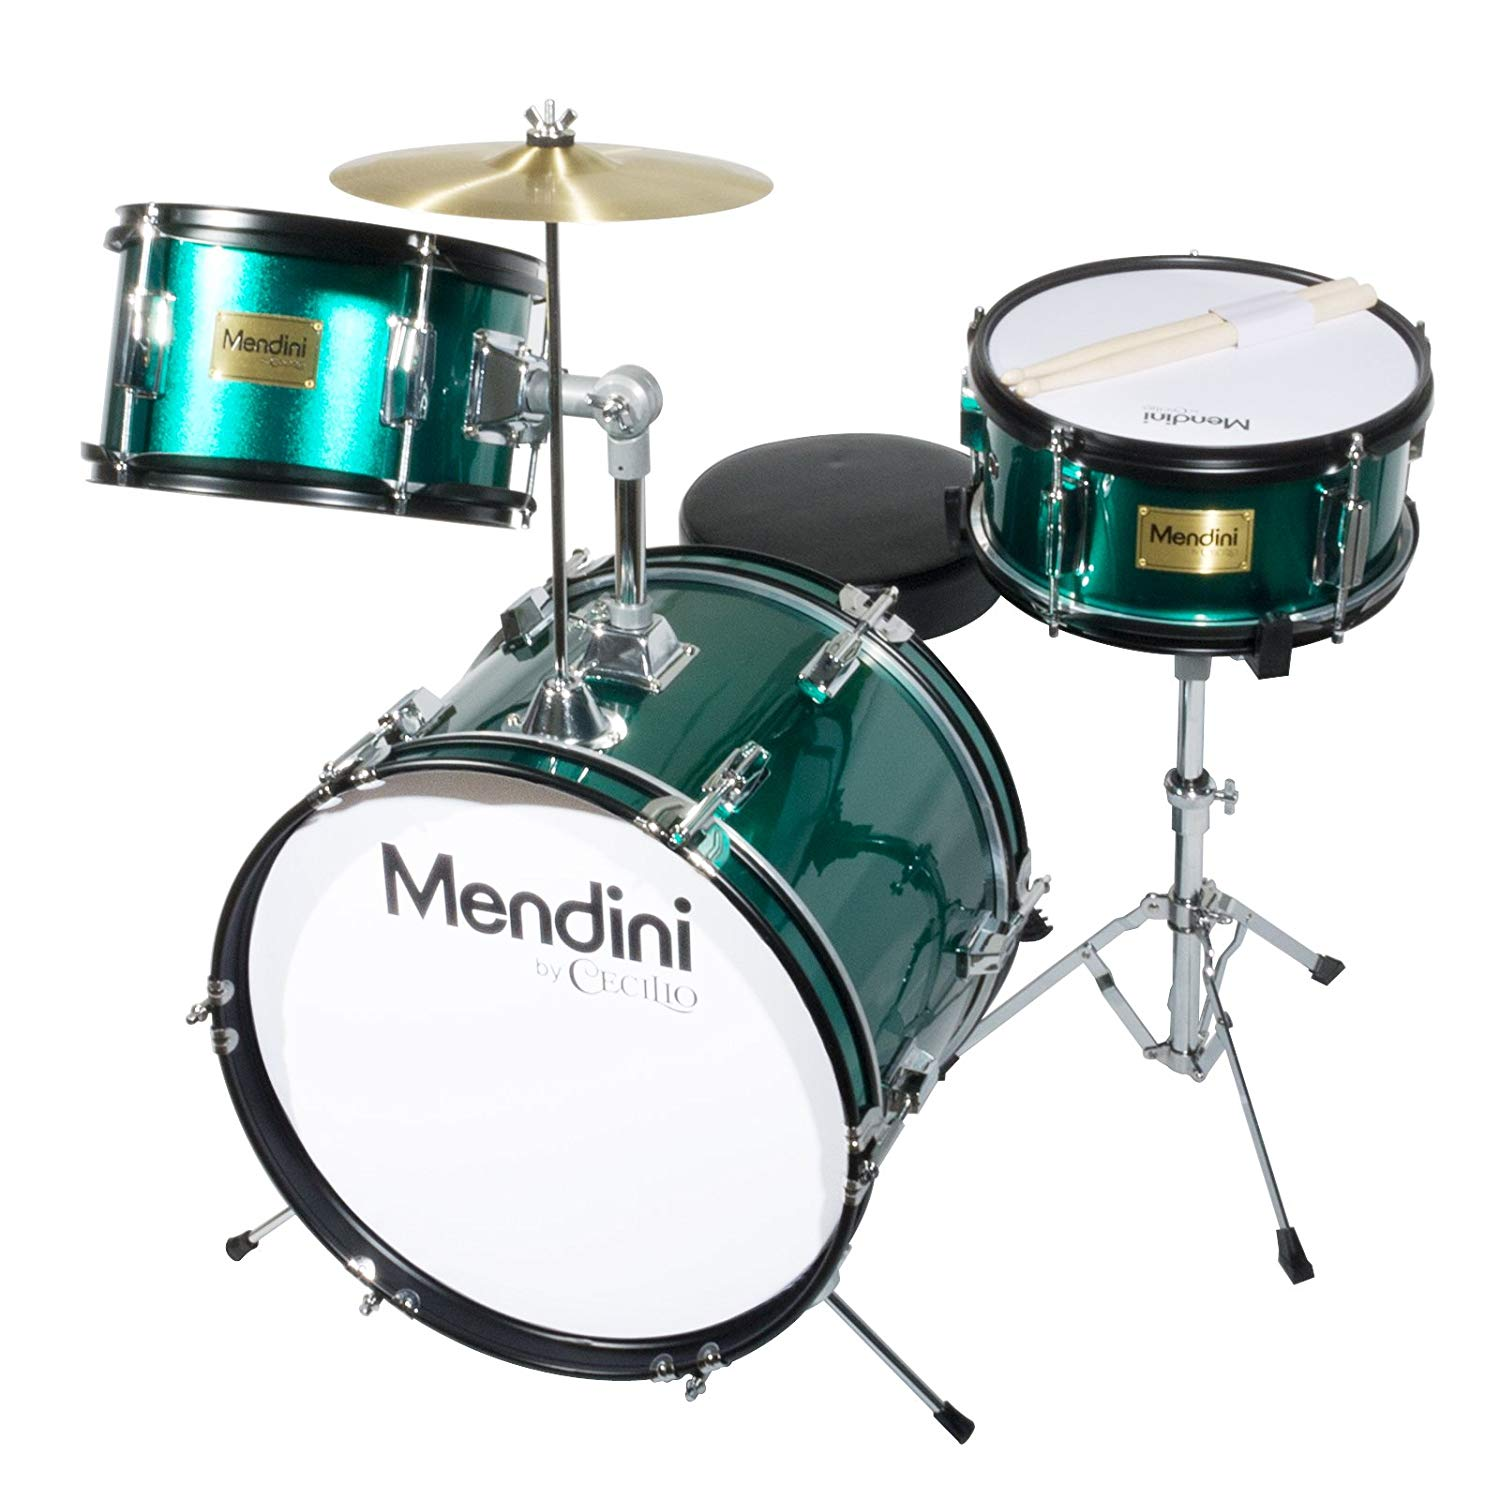 Mendini by Cecilio 16 inch 3-Piece Kids/Junior Drum Set